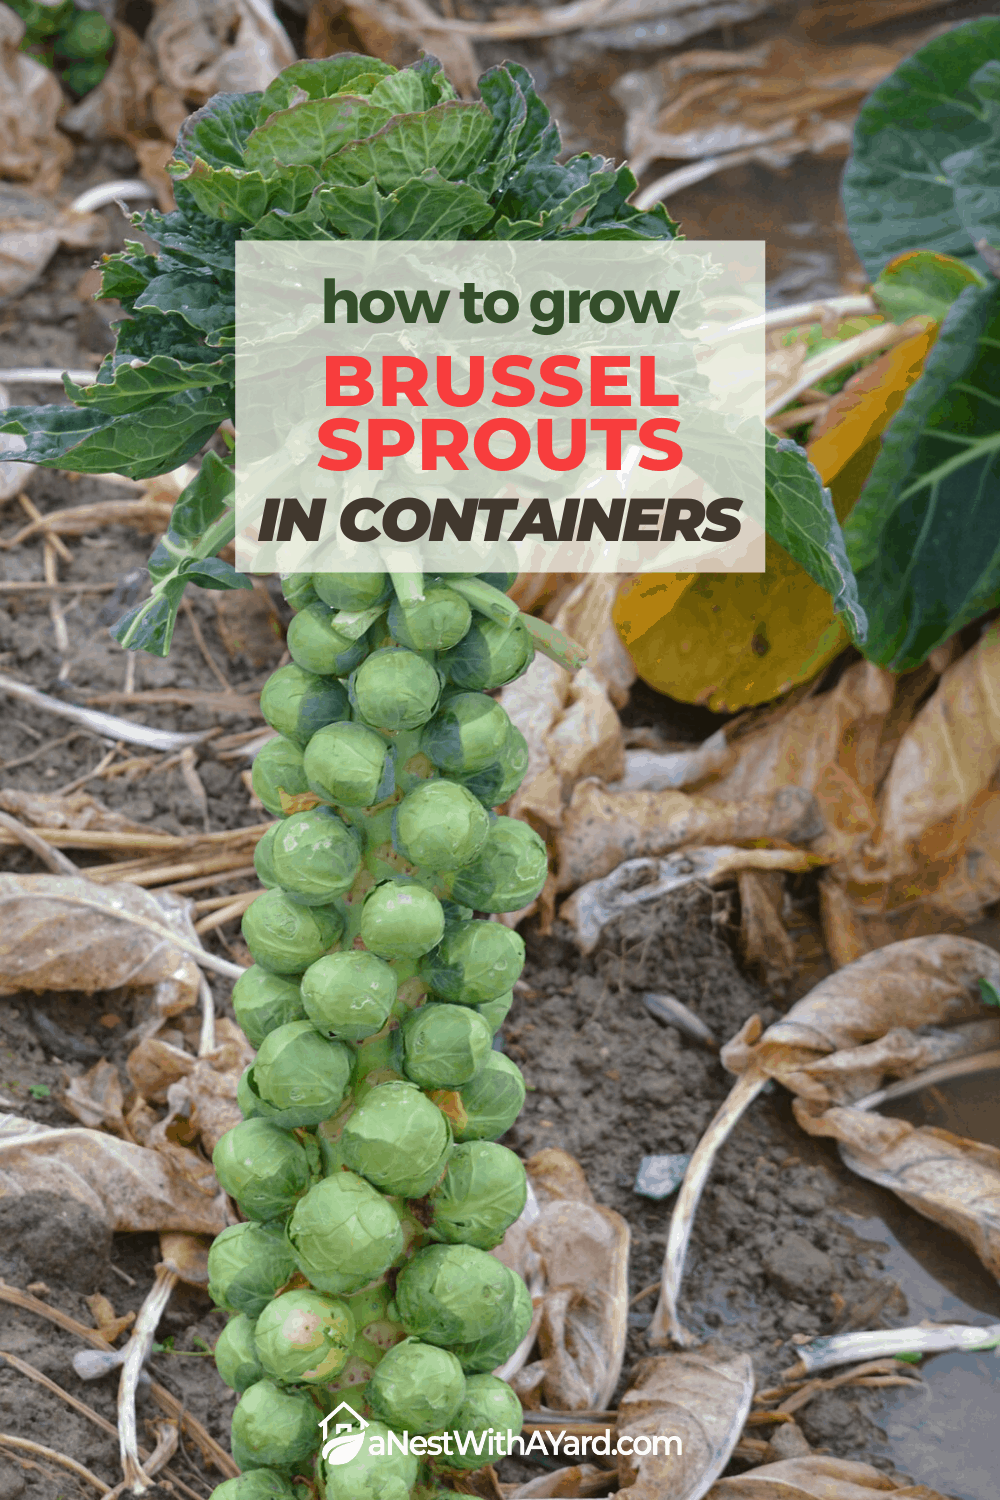 How to Grow Brussel Sprouts in Containers 2